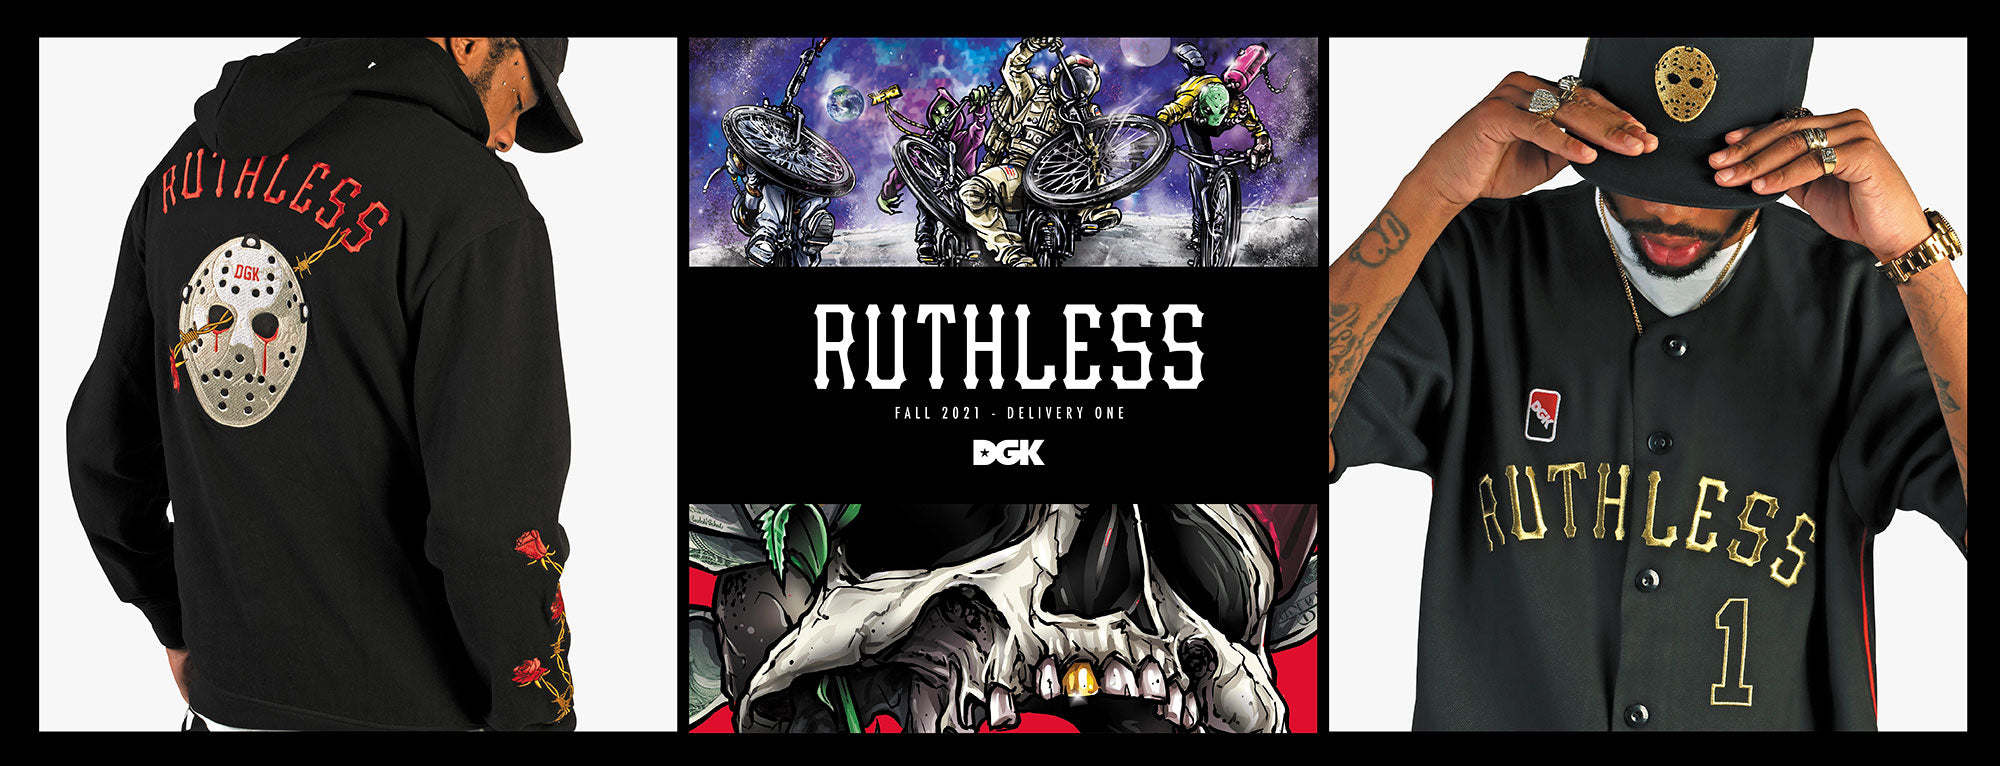 DGK RUTHLESS COLLECTION